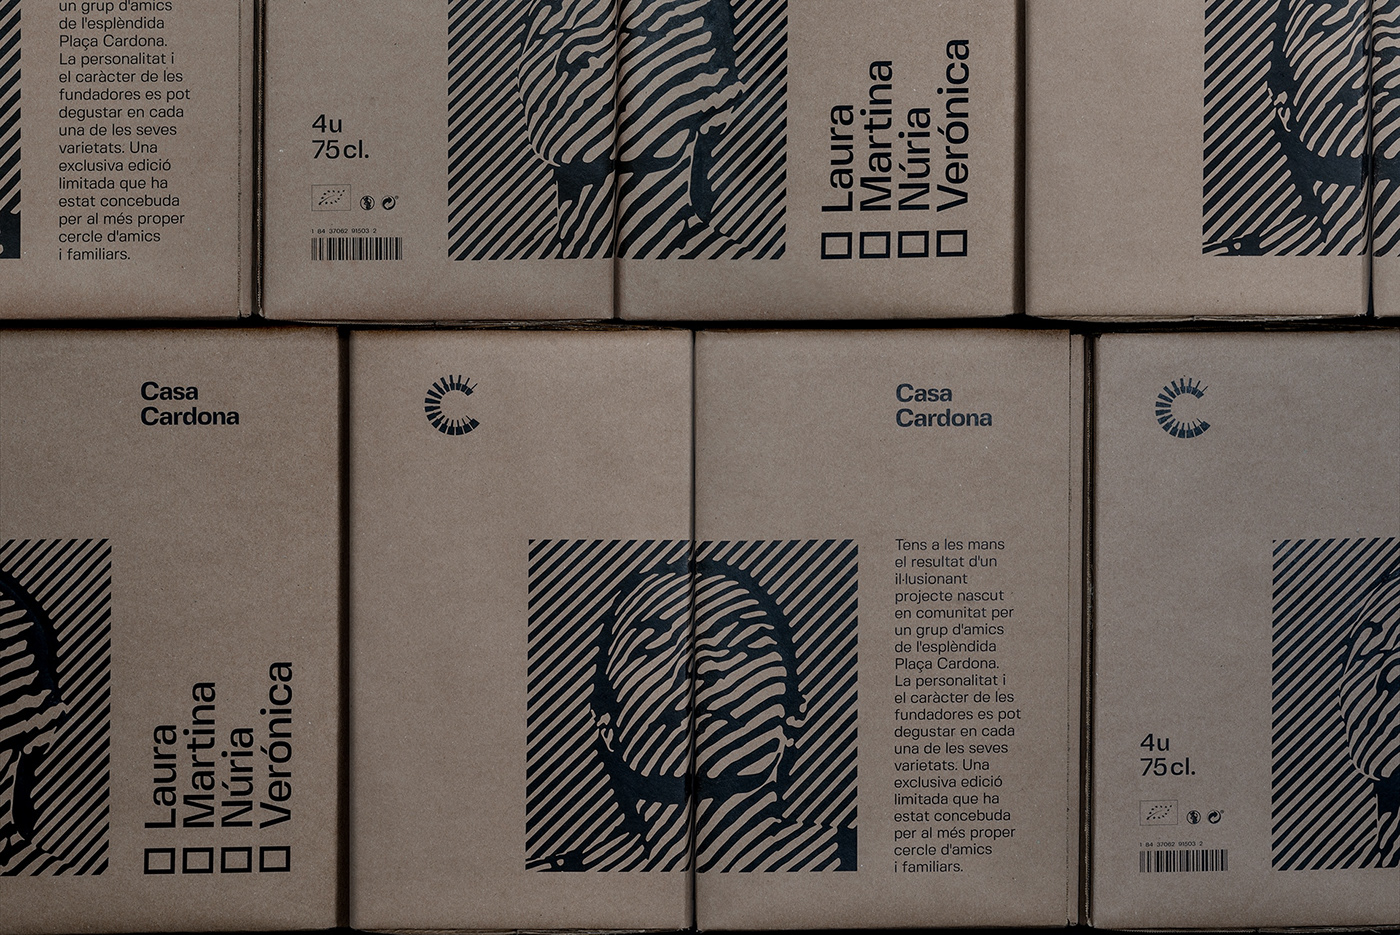 Casa Cardona wines. Group shot of the wine boxes in a stack creating a seamless image